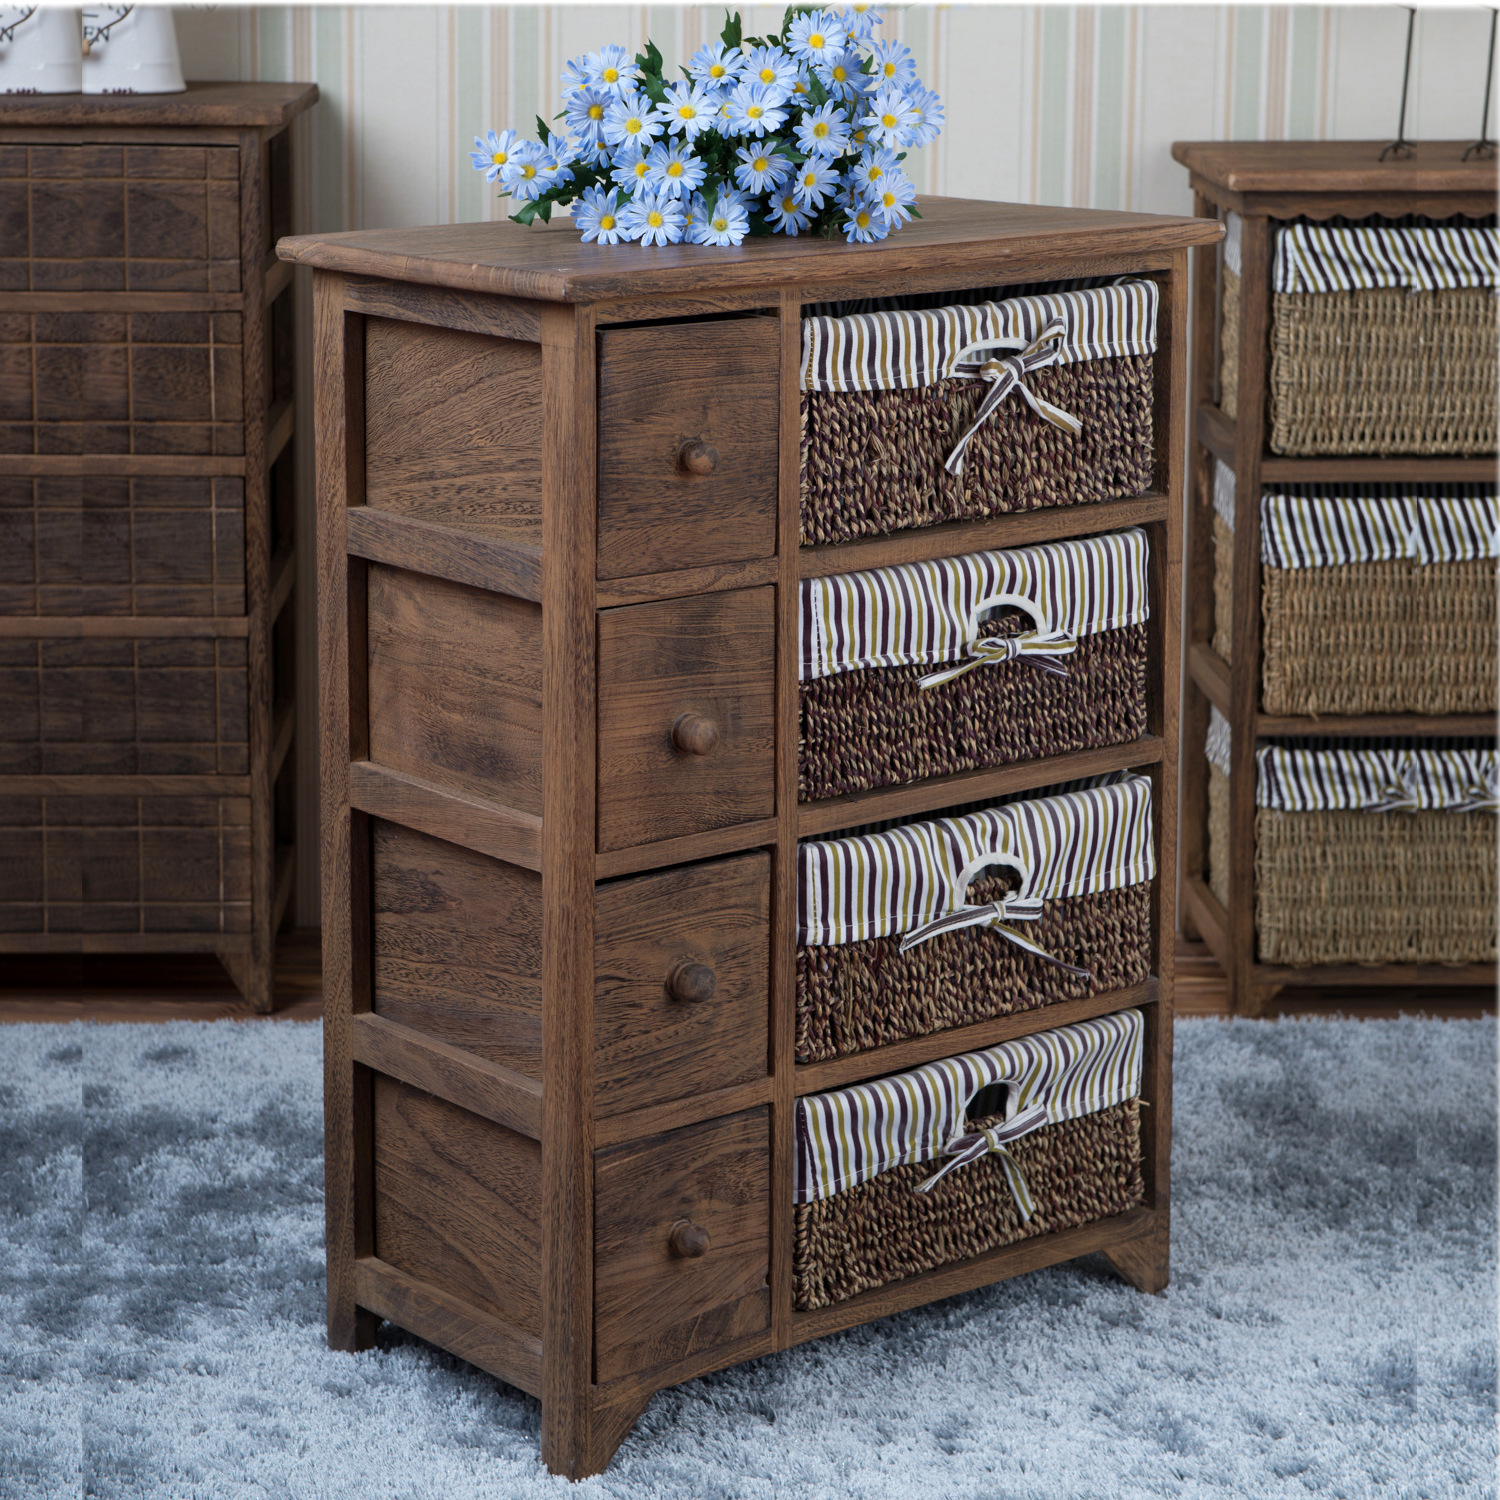 Household Products Storage Cabinets Solid Wood Drawer Type Locker Wood Rattan Wardrobe For Children Toy Storage Wholesale